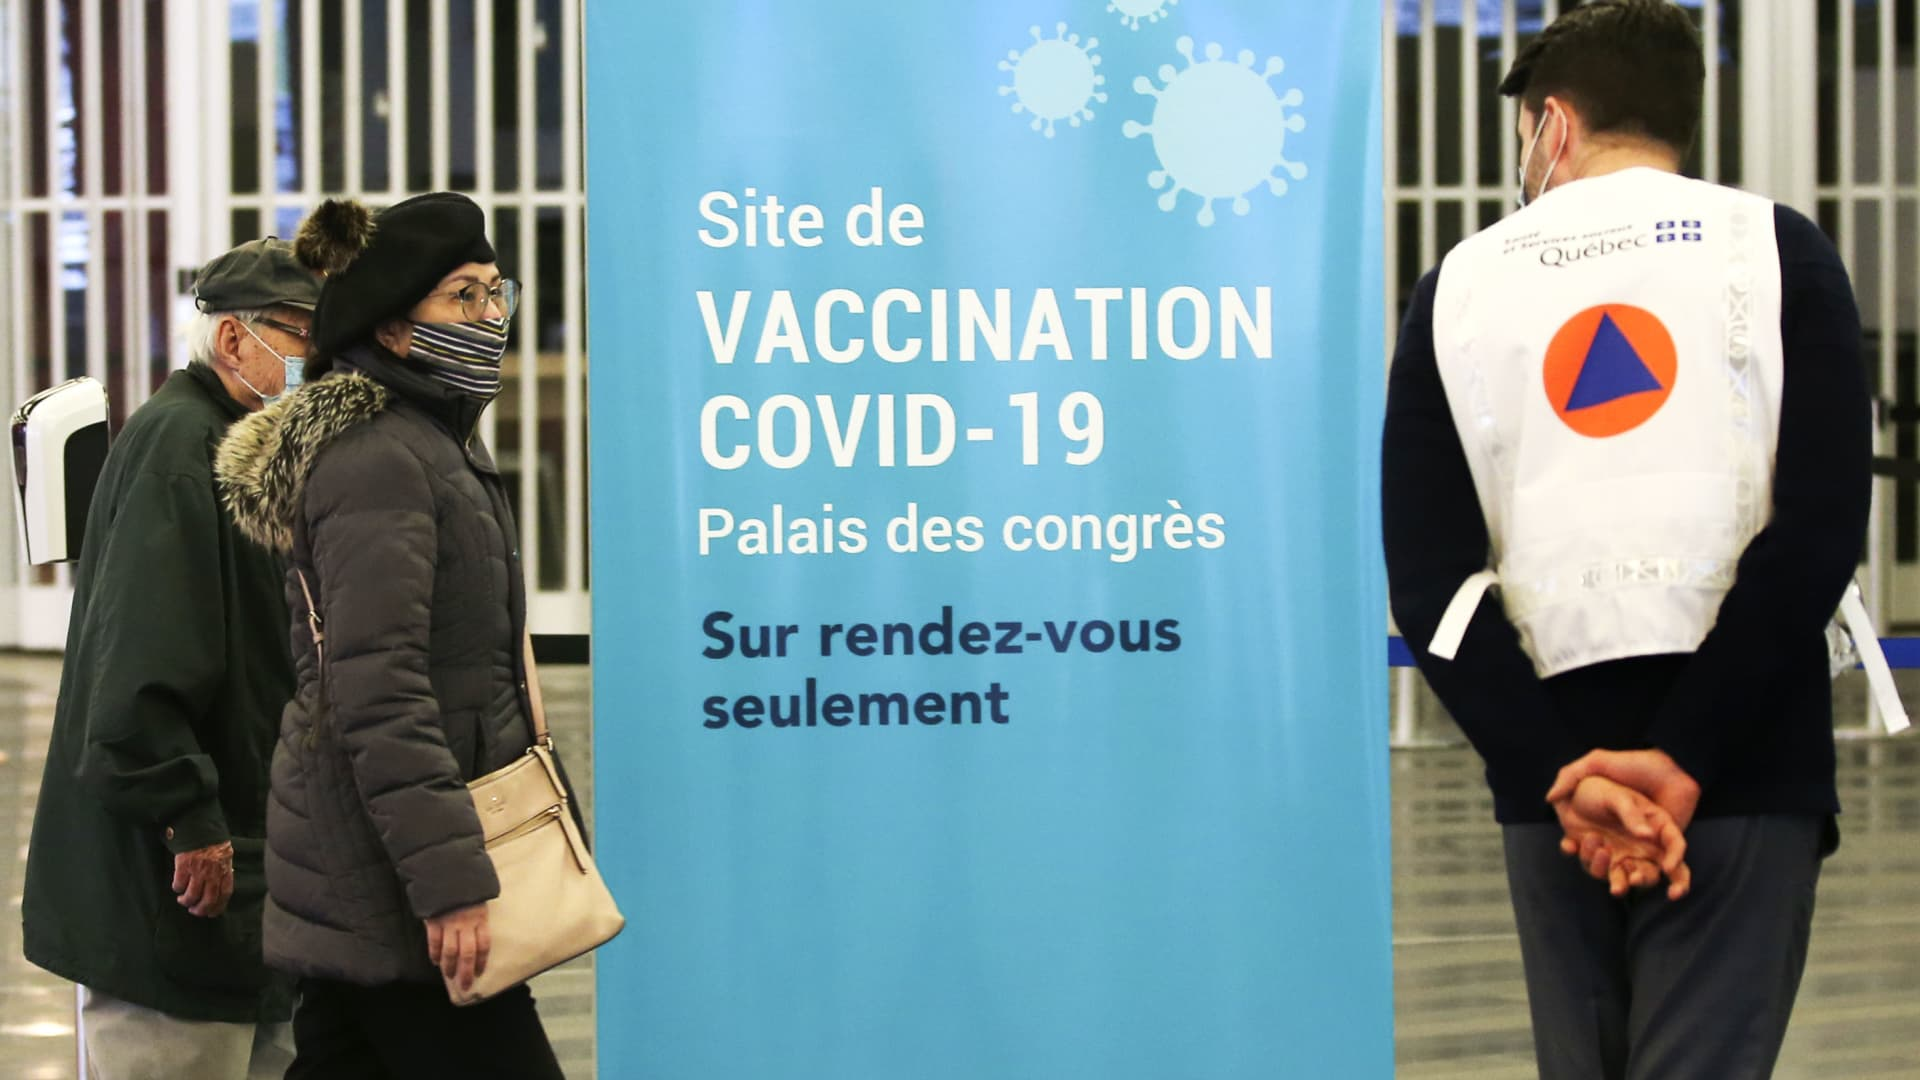 People arrive to be vaccinated at the Palais Des Congres convention centre in Montreal, Quebec, Canada, on Monday, March 1, 2021.